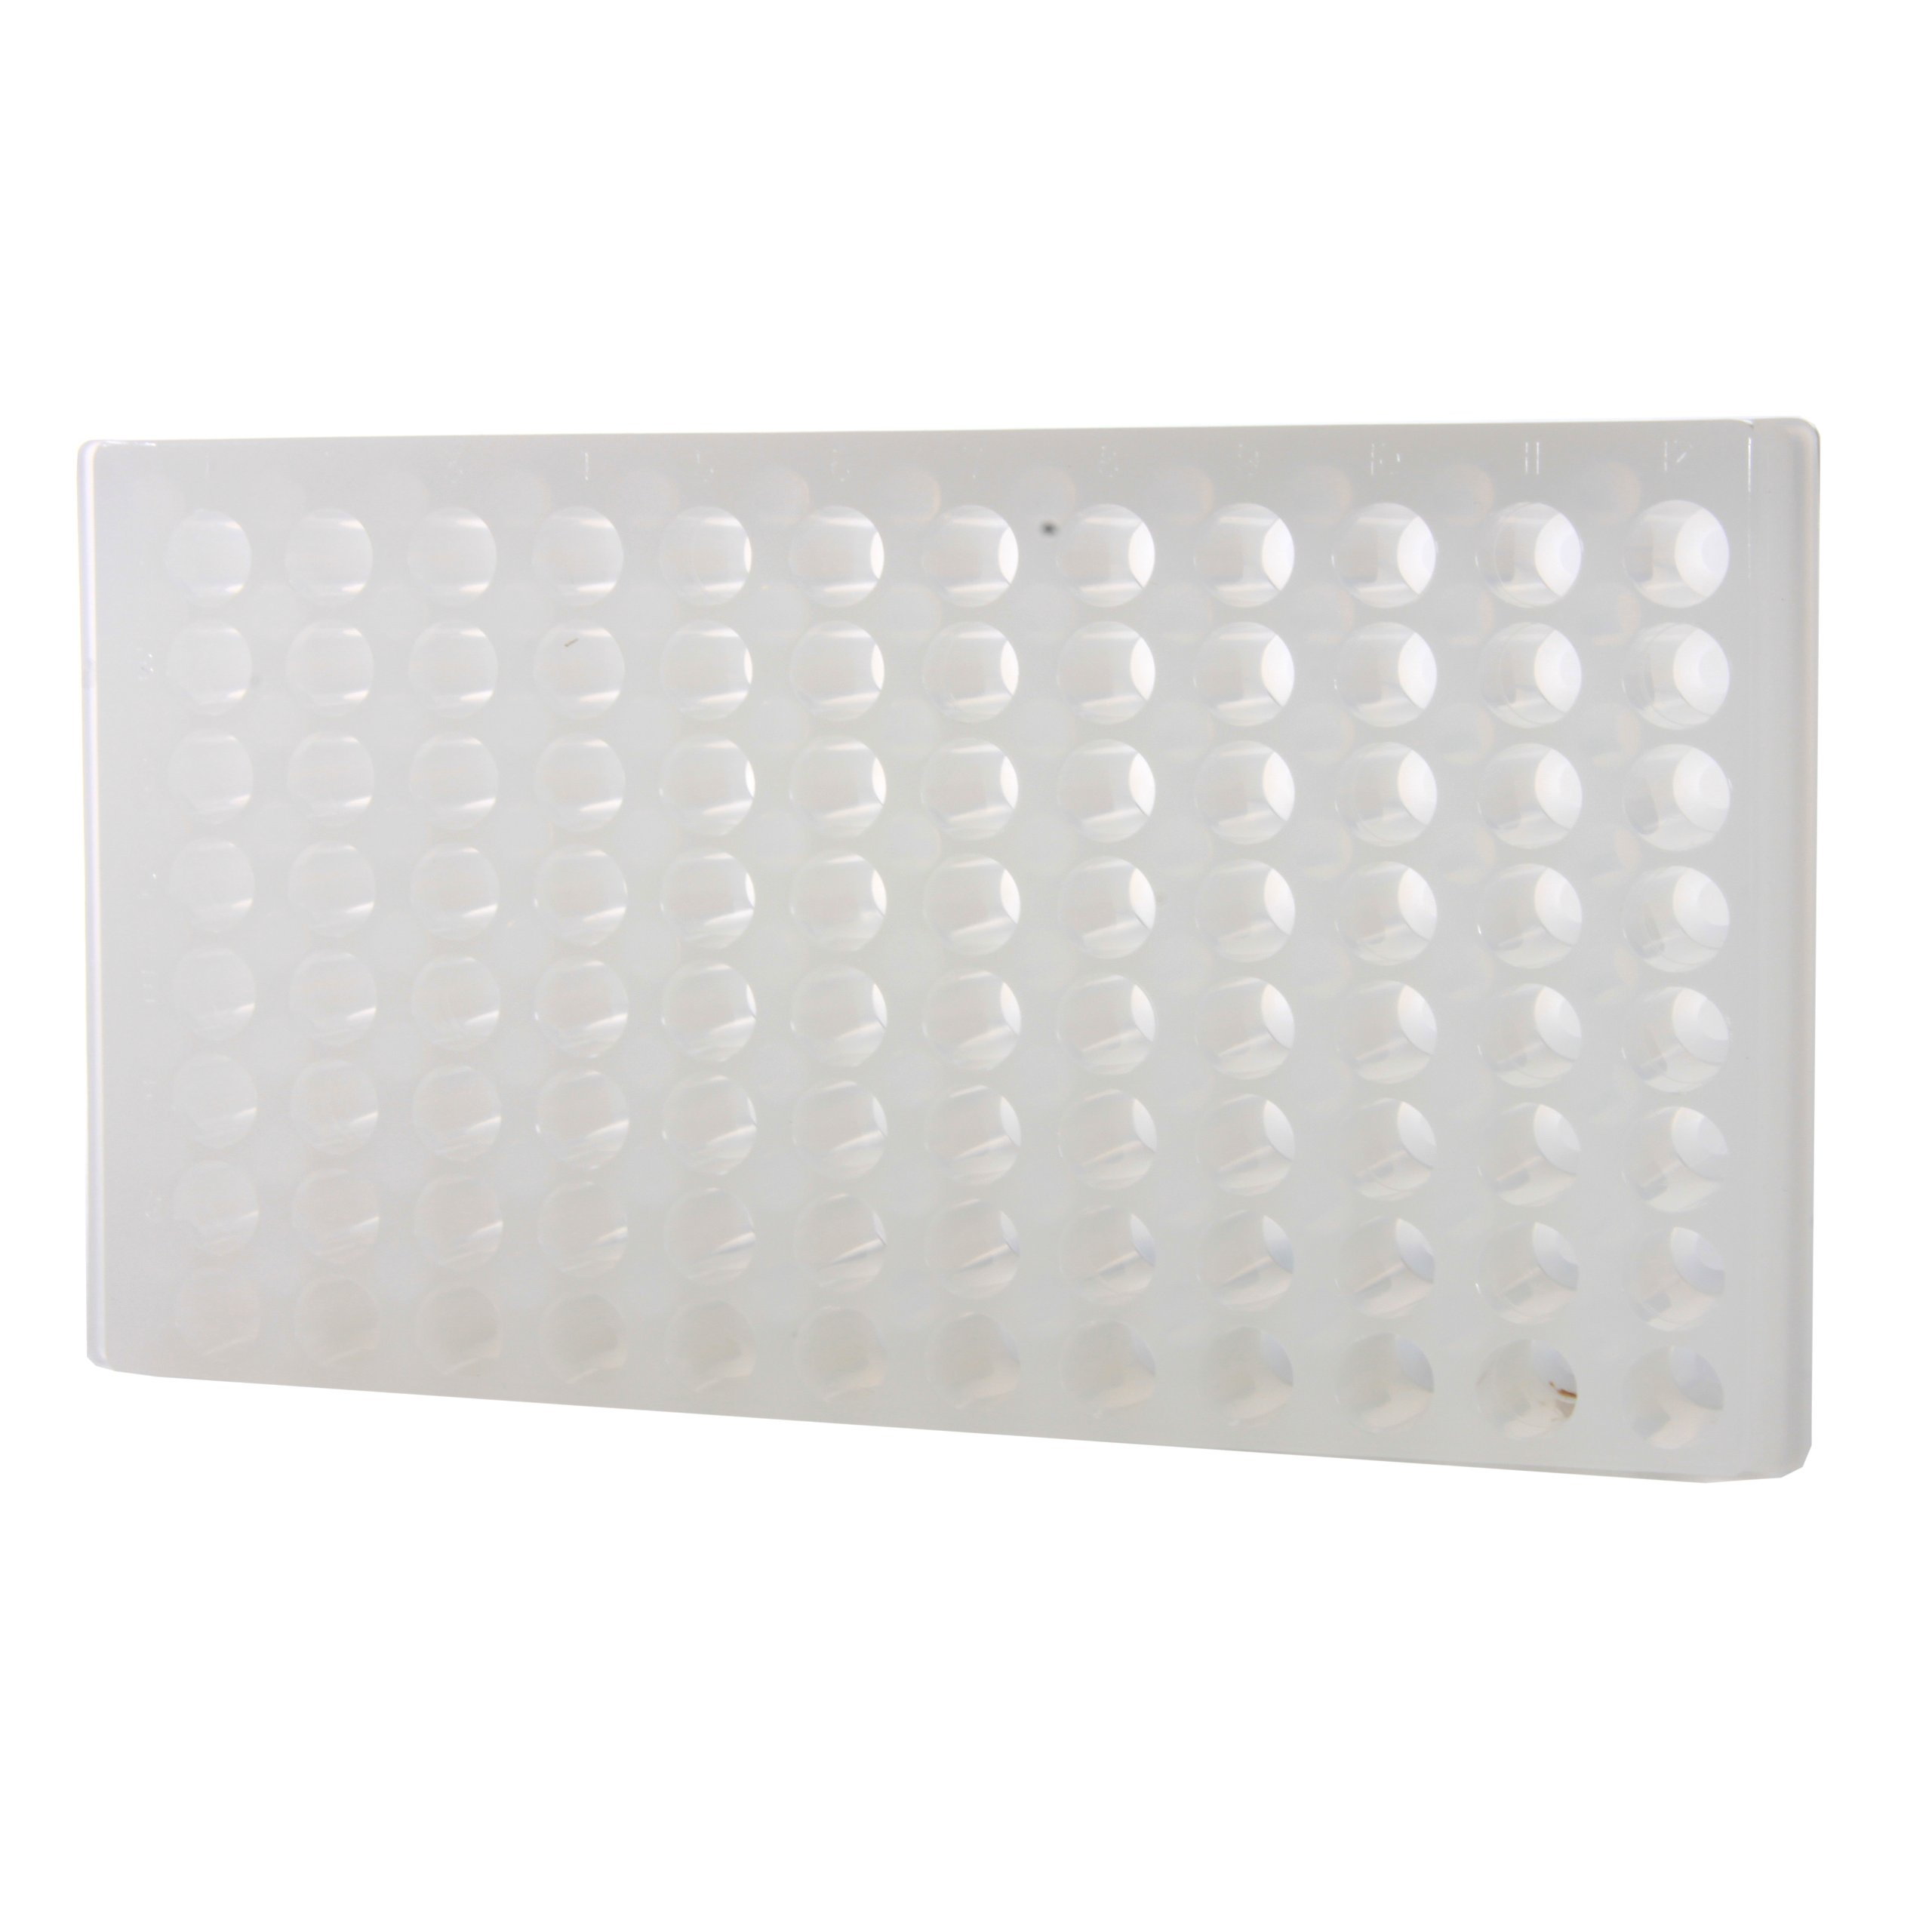 Bio Plas 0090 Polypropylene 96 Well Reversible Microcentrifuge Tube Rack, Autoclavable, Natural (Pack of 5)